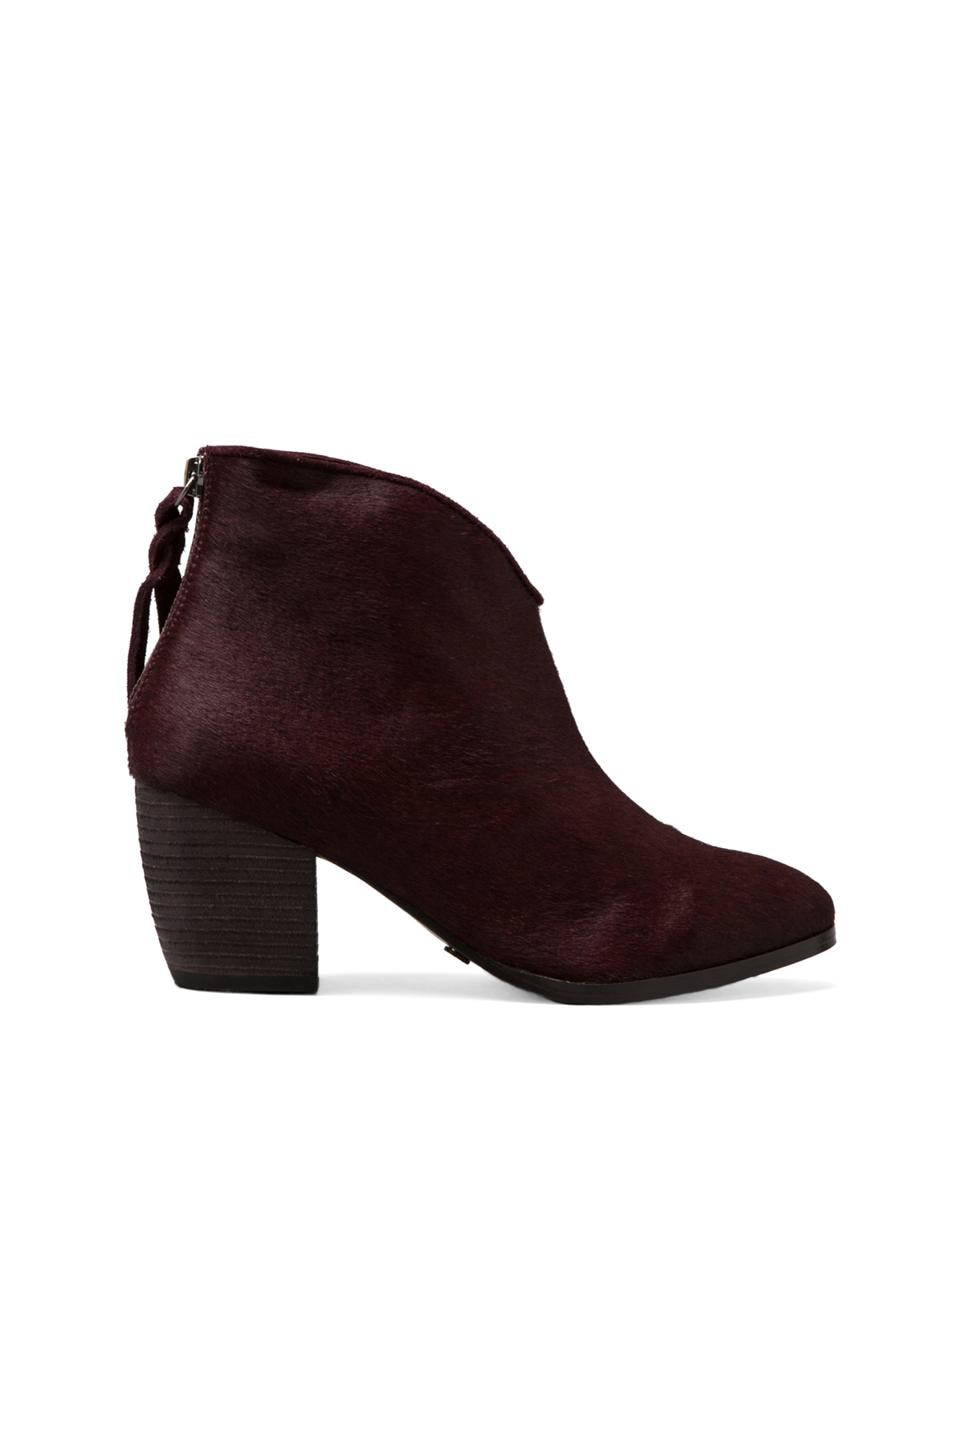 Twelfth Street By Cynthia Vincent Dane Hair on Calf Bootie in Bordeaux